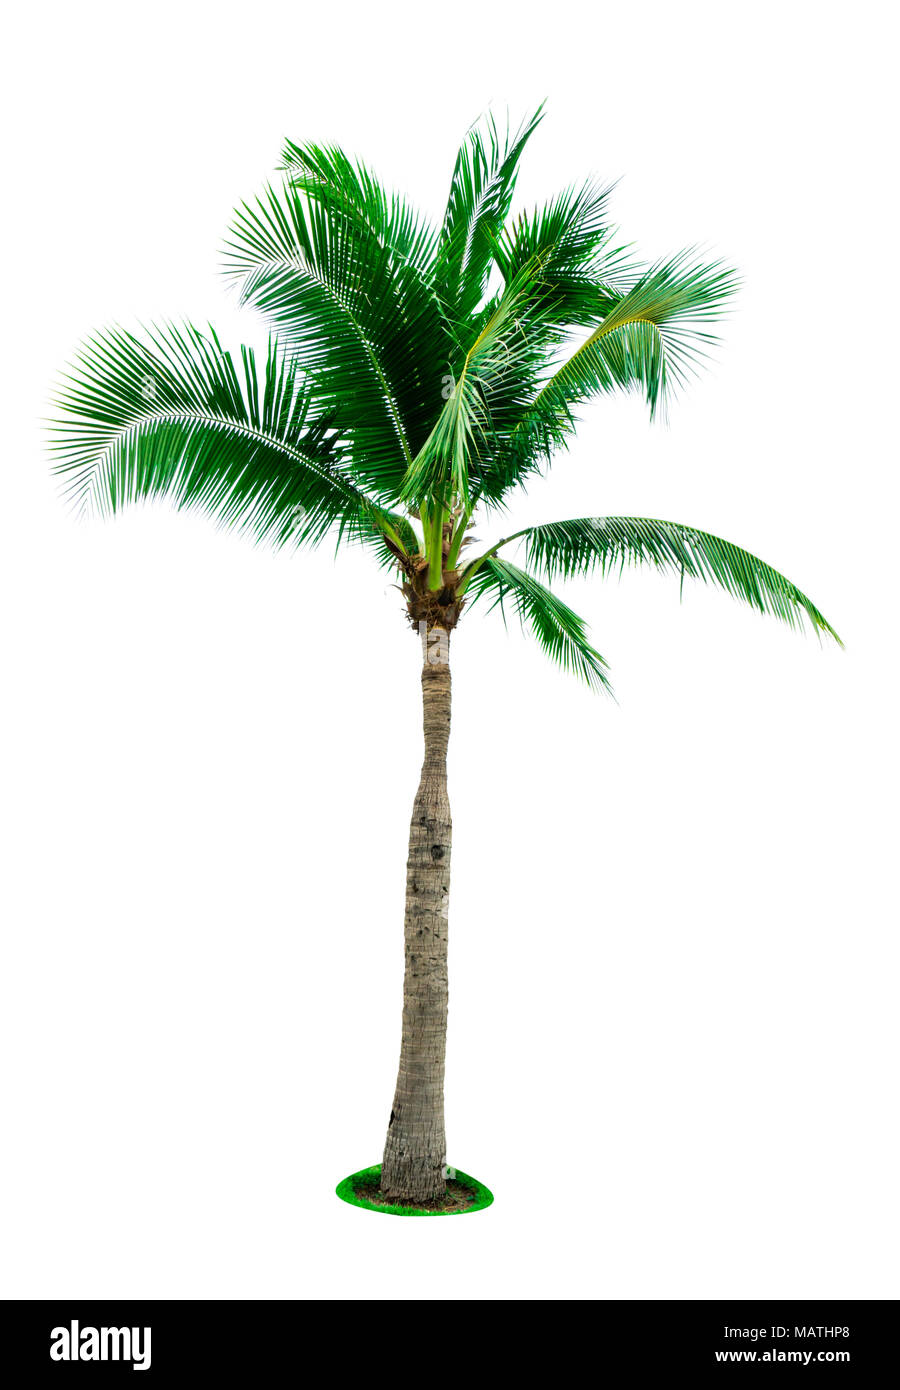 Coconut Palm Tree Cut Out Stock Images & Pictures - Alamy